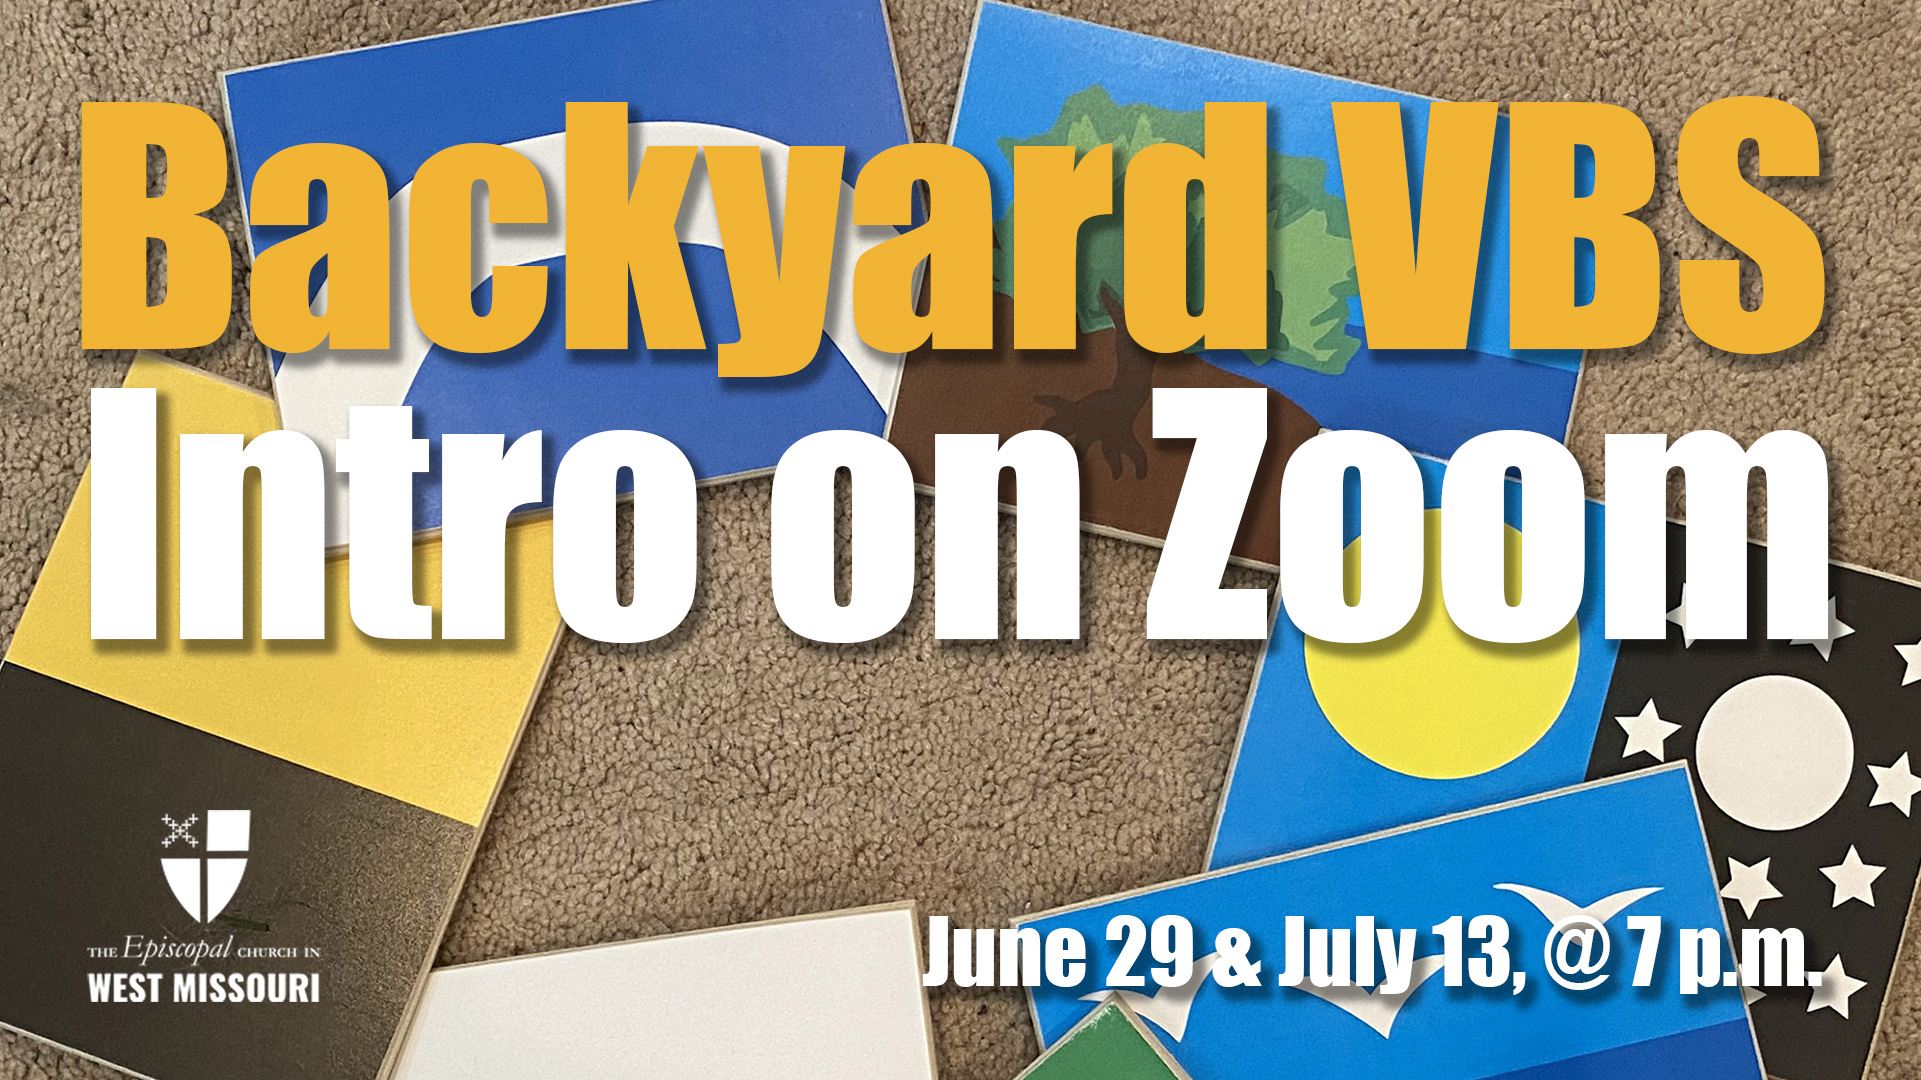 Sign Up For Backyard VBS!